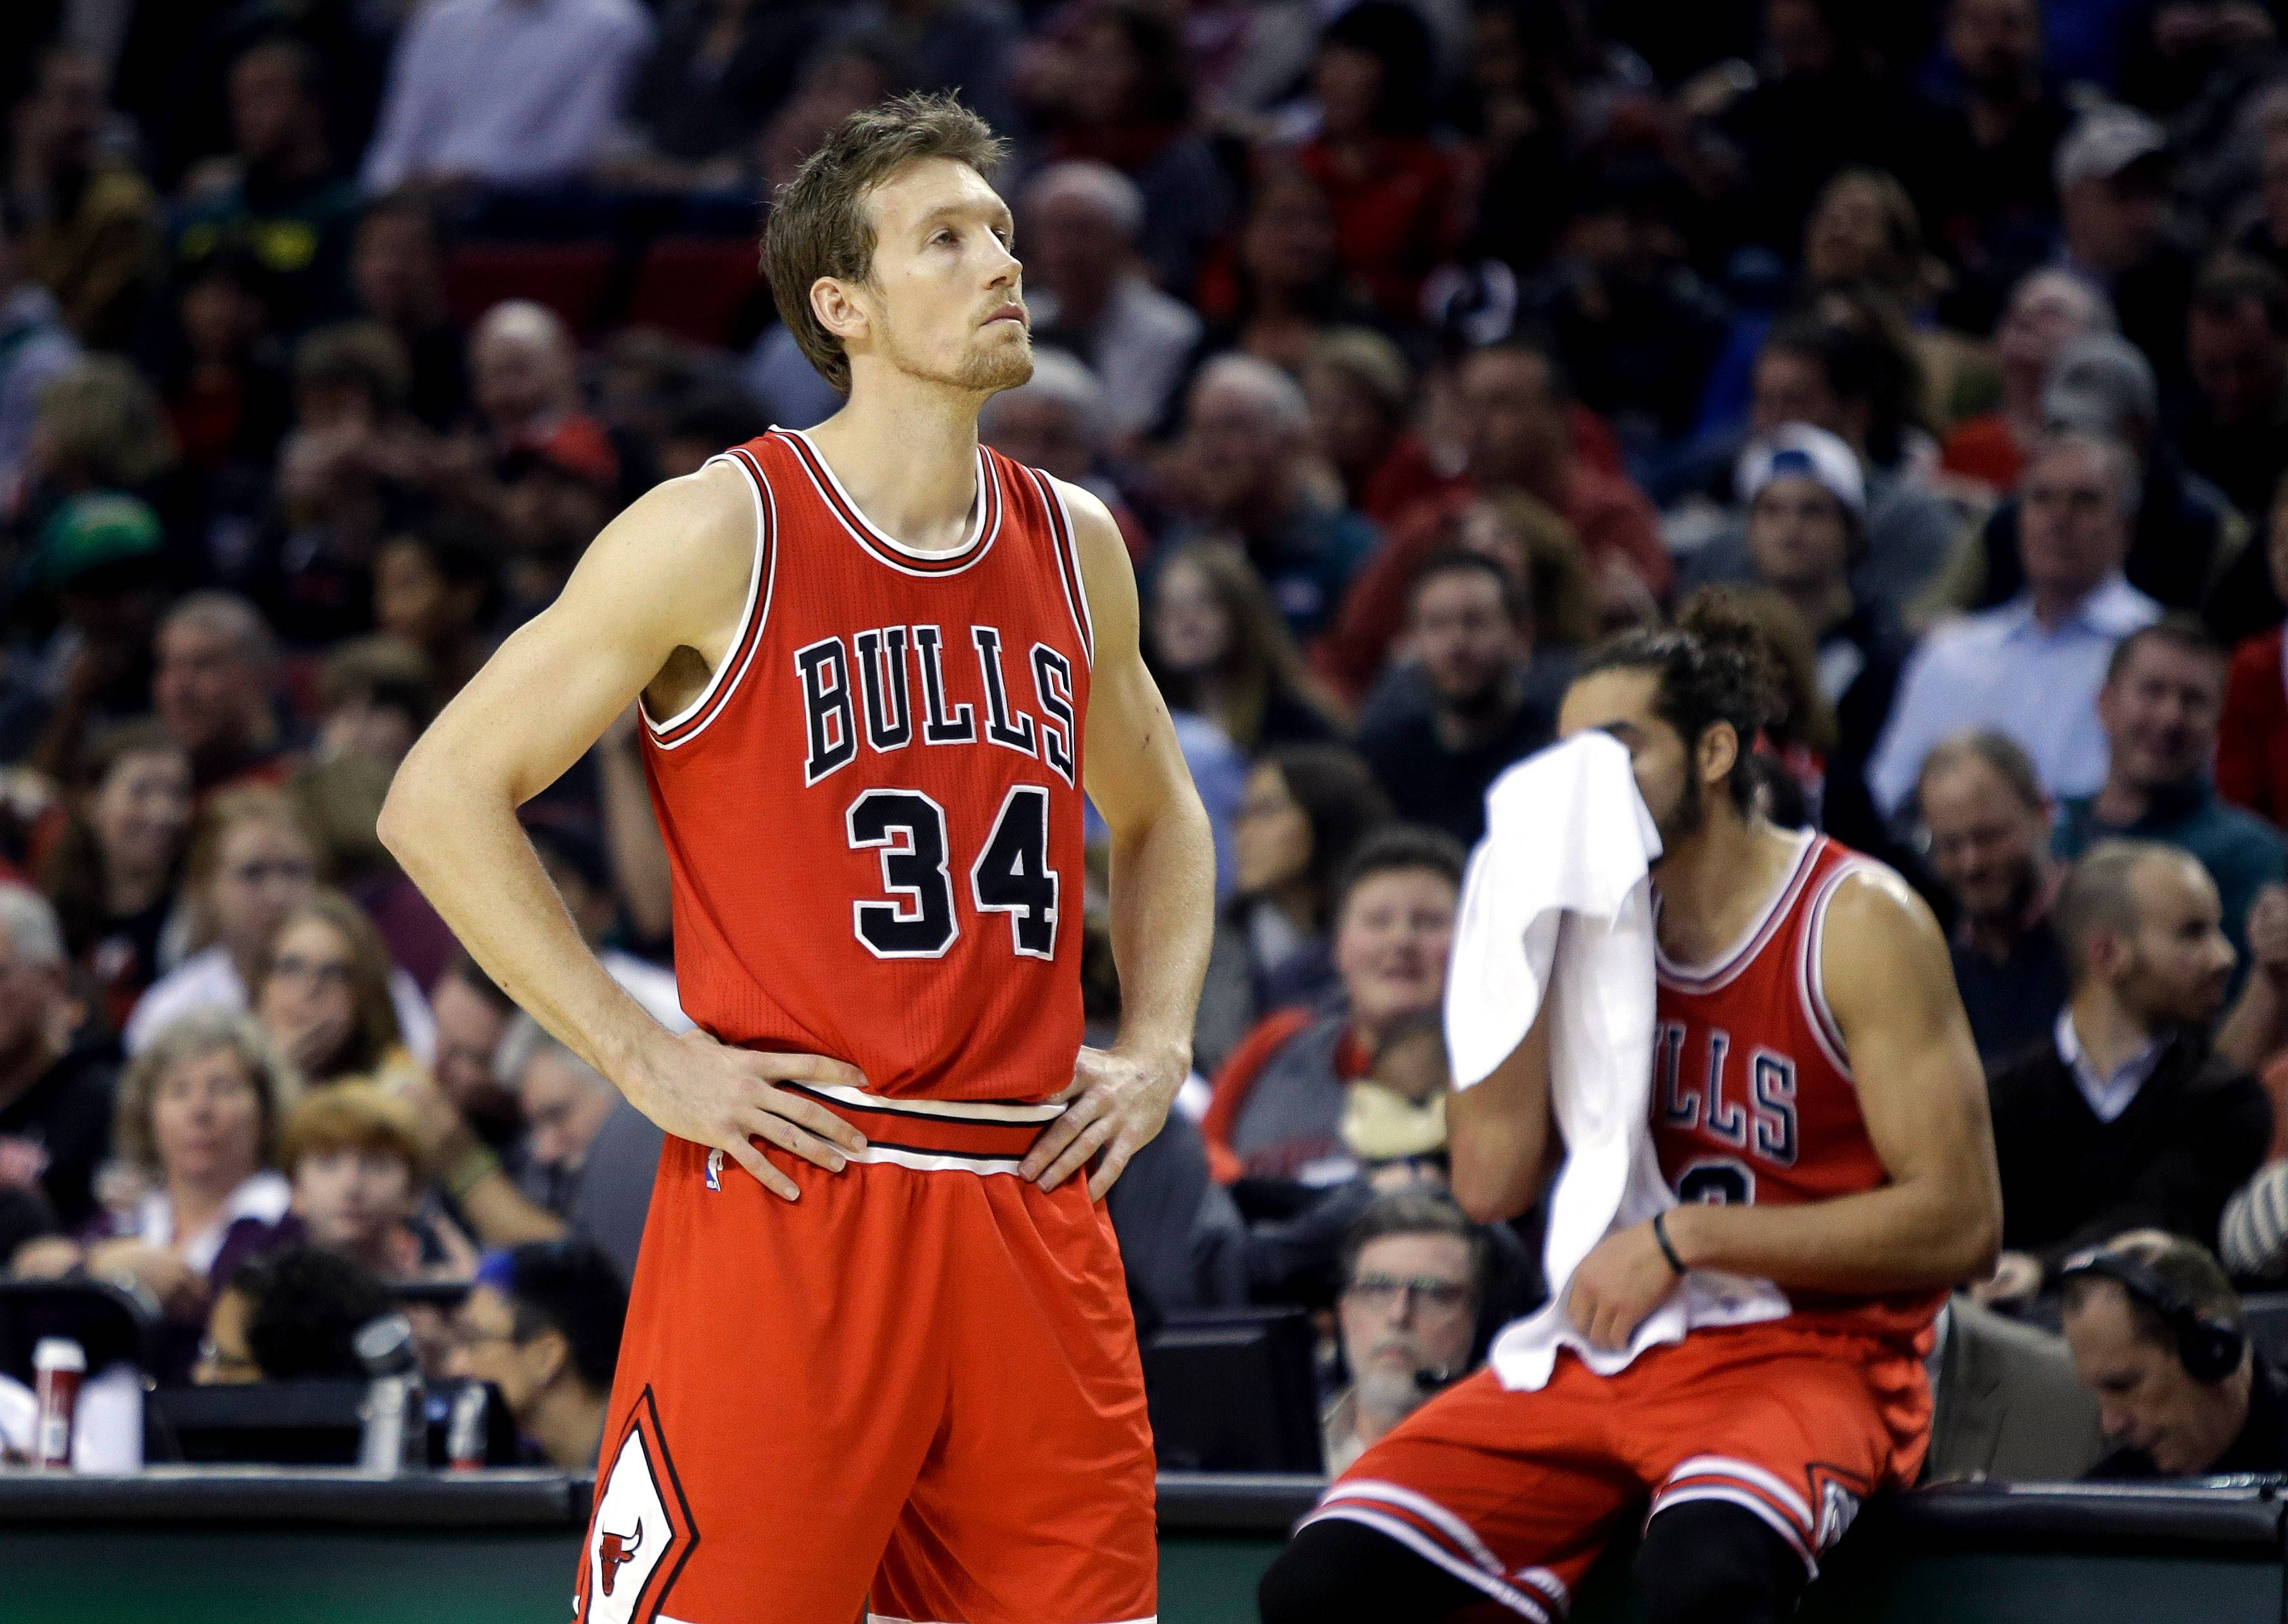 The Bulls' Mike Dunleavy, left, center Joakim Noah wait before referees ruled that Dunleavy had committed a flagrant foul during the second half Friday night in a 105-87 loss to the Trail Blazers in Portland, Ore.